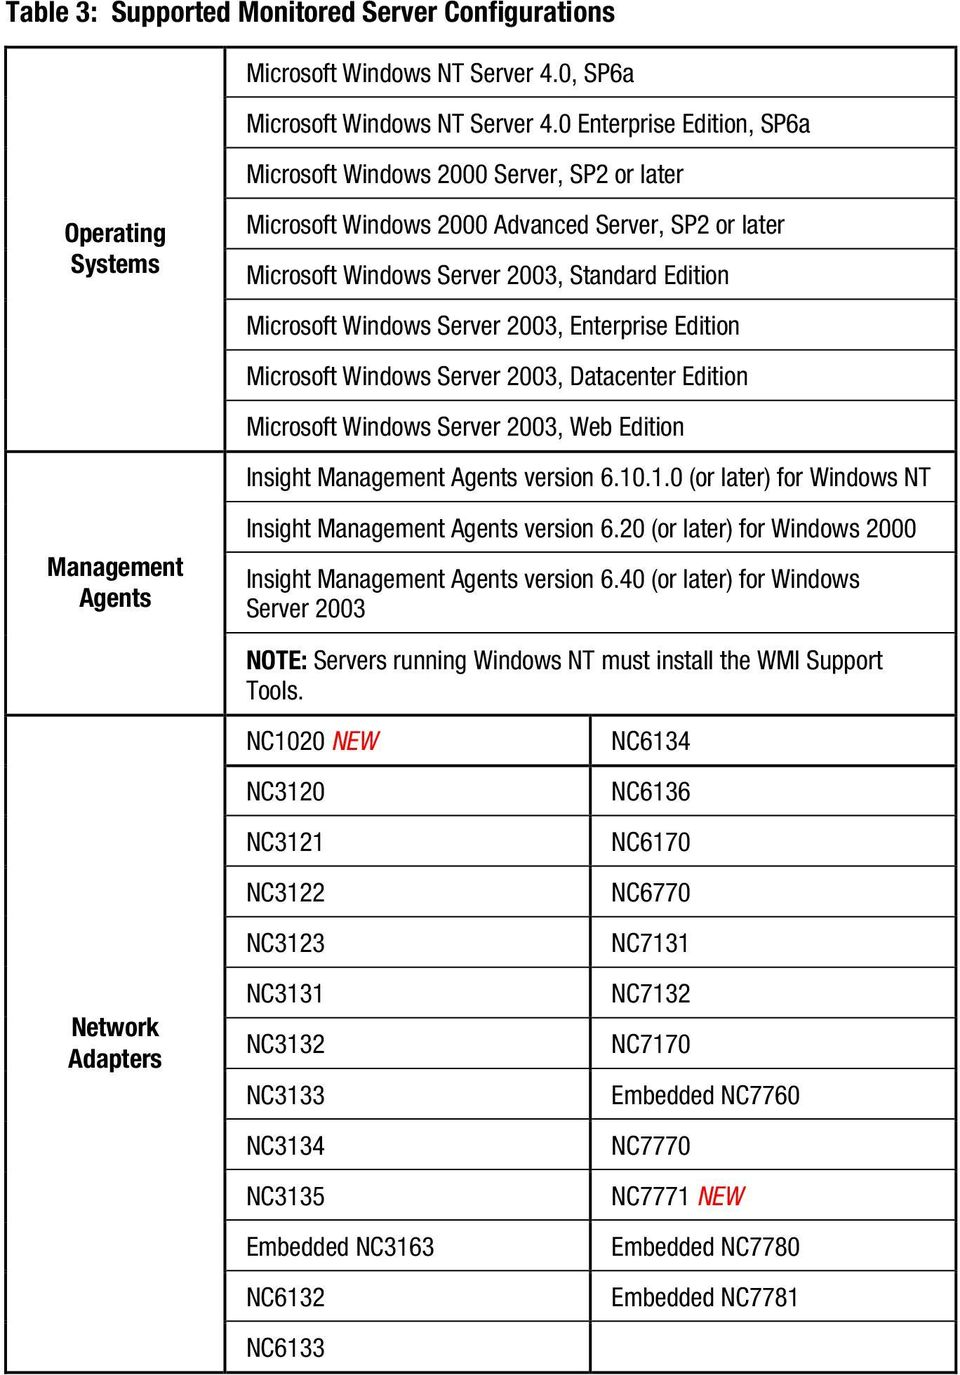 Server 2003, Standard Edition Microsoft Windows Server 2003, Enterprise Edition Microsoft Windows Server 2003, Datacenter Edition Microsoft Windows Server 2003, Web Edition Insight Management Agents